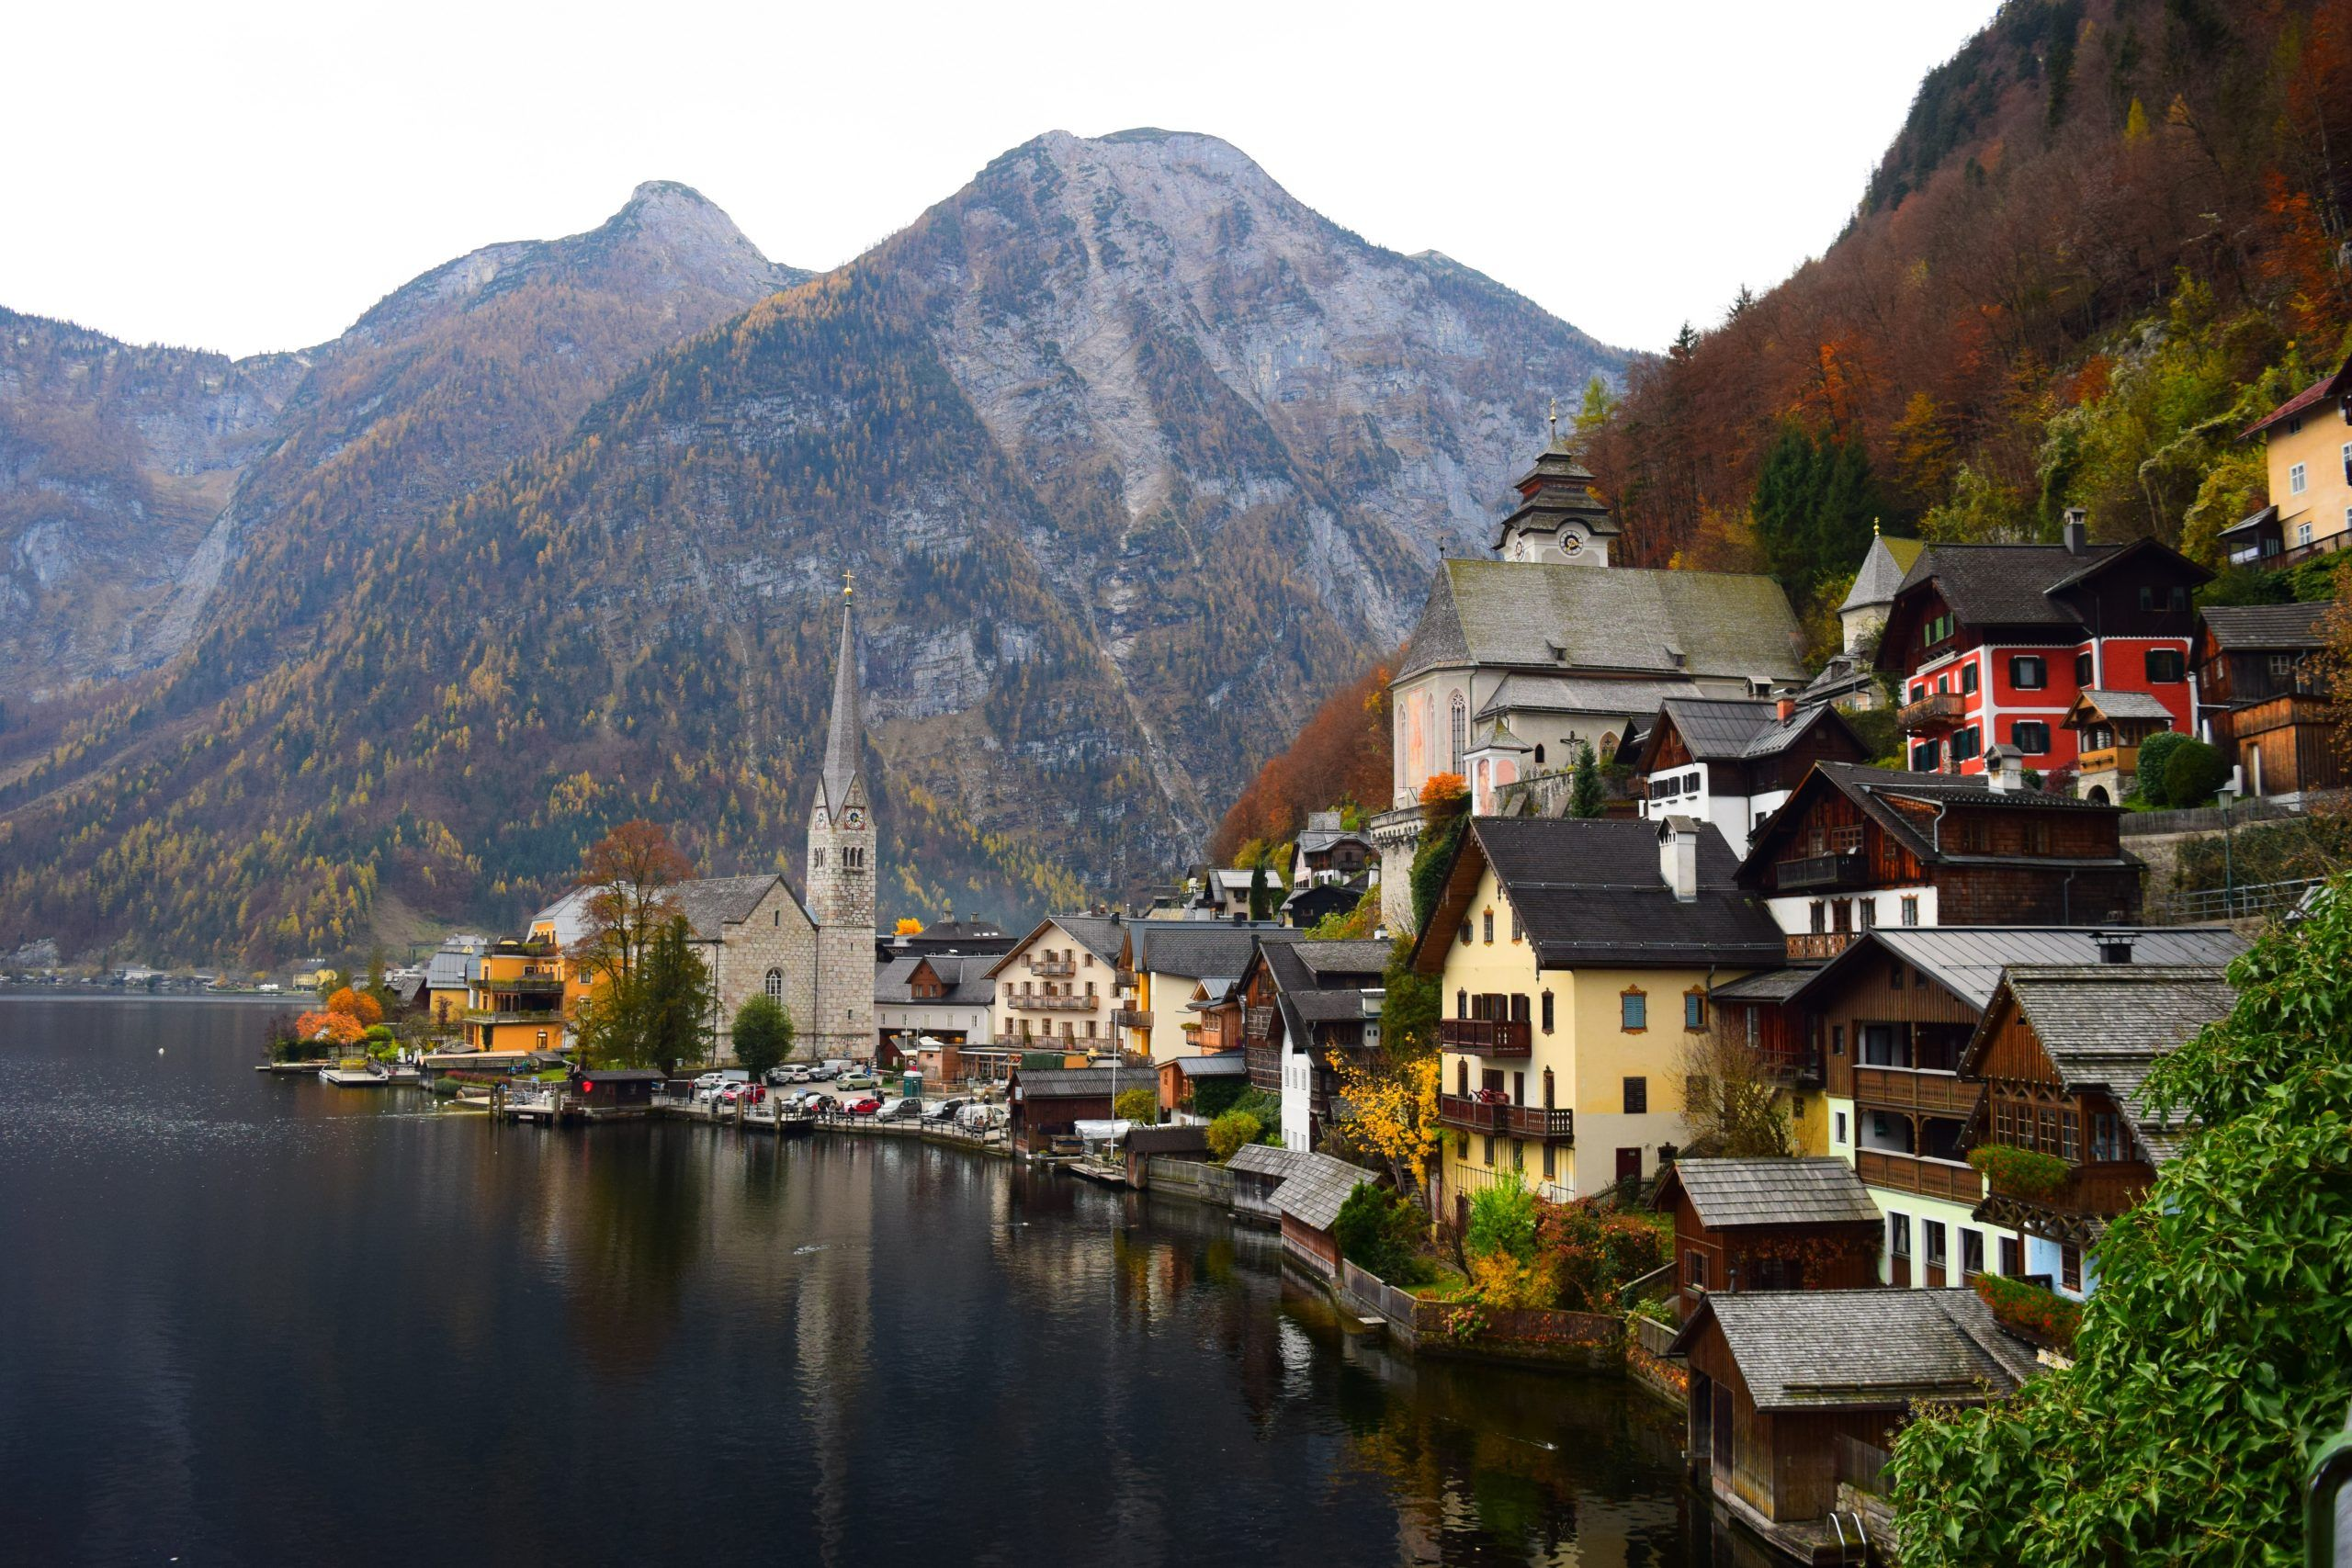 National park in Europe